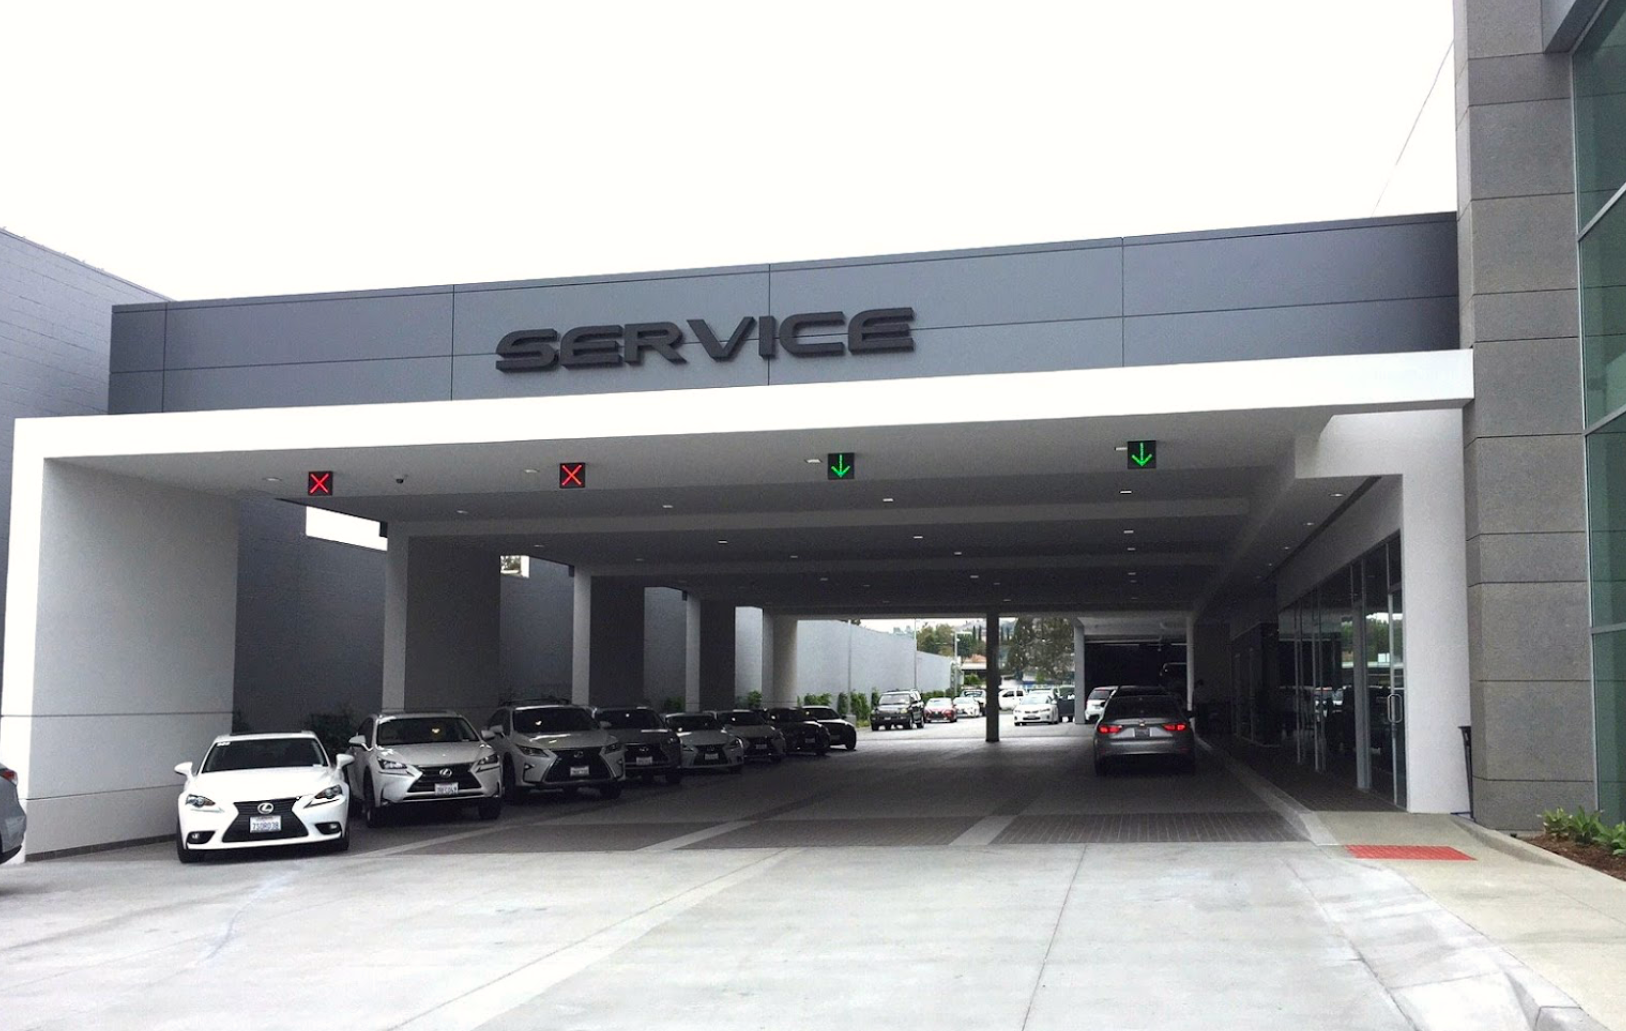 Lexus Thousand Oaks Service